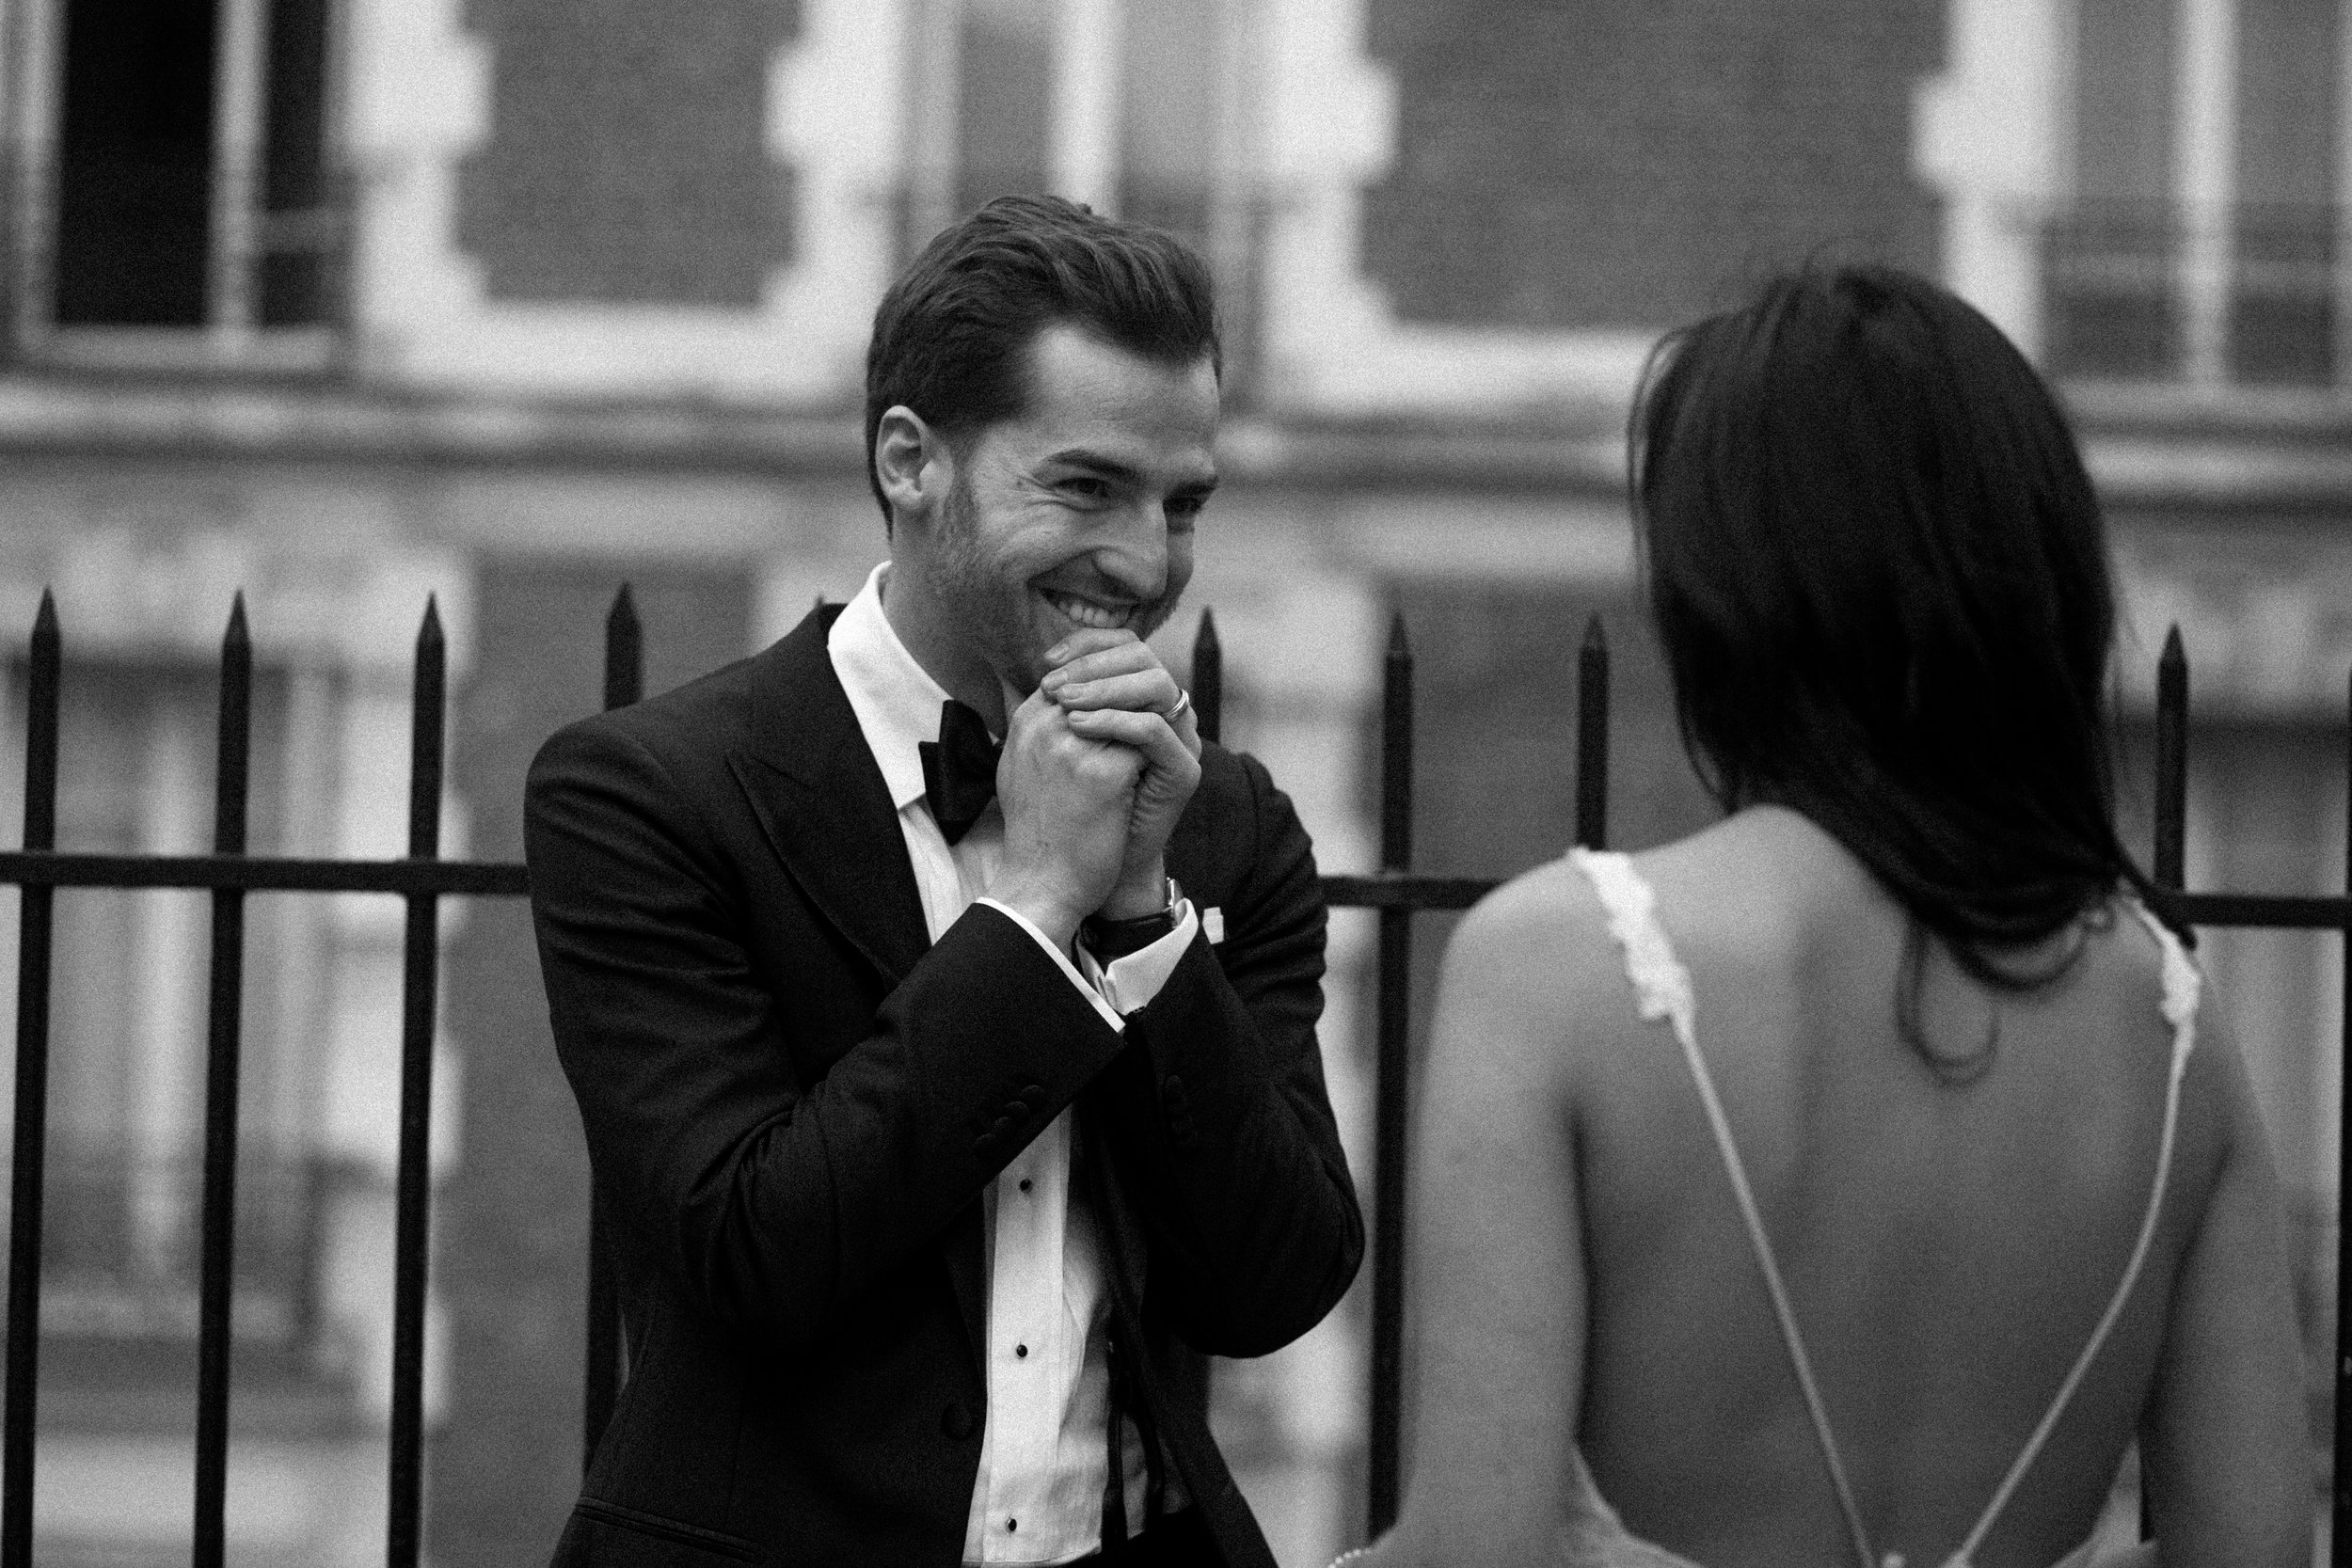 paris wedding photographer craig george hannah and mitch elopment-197.jpg